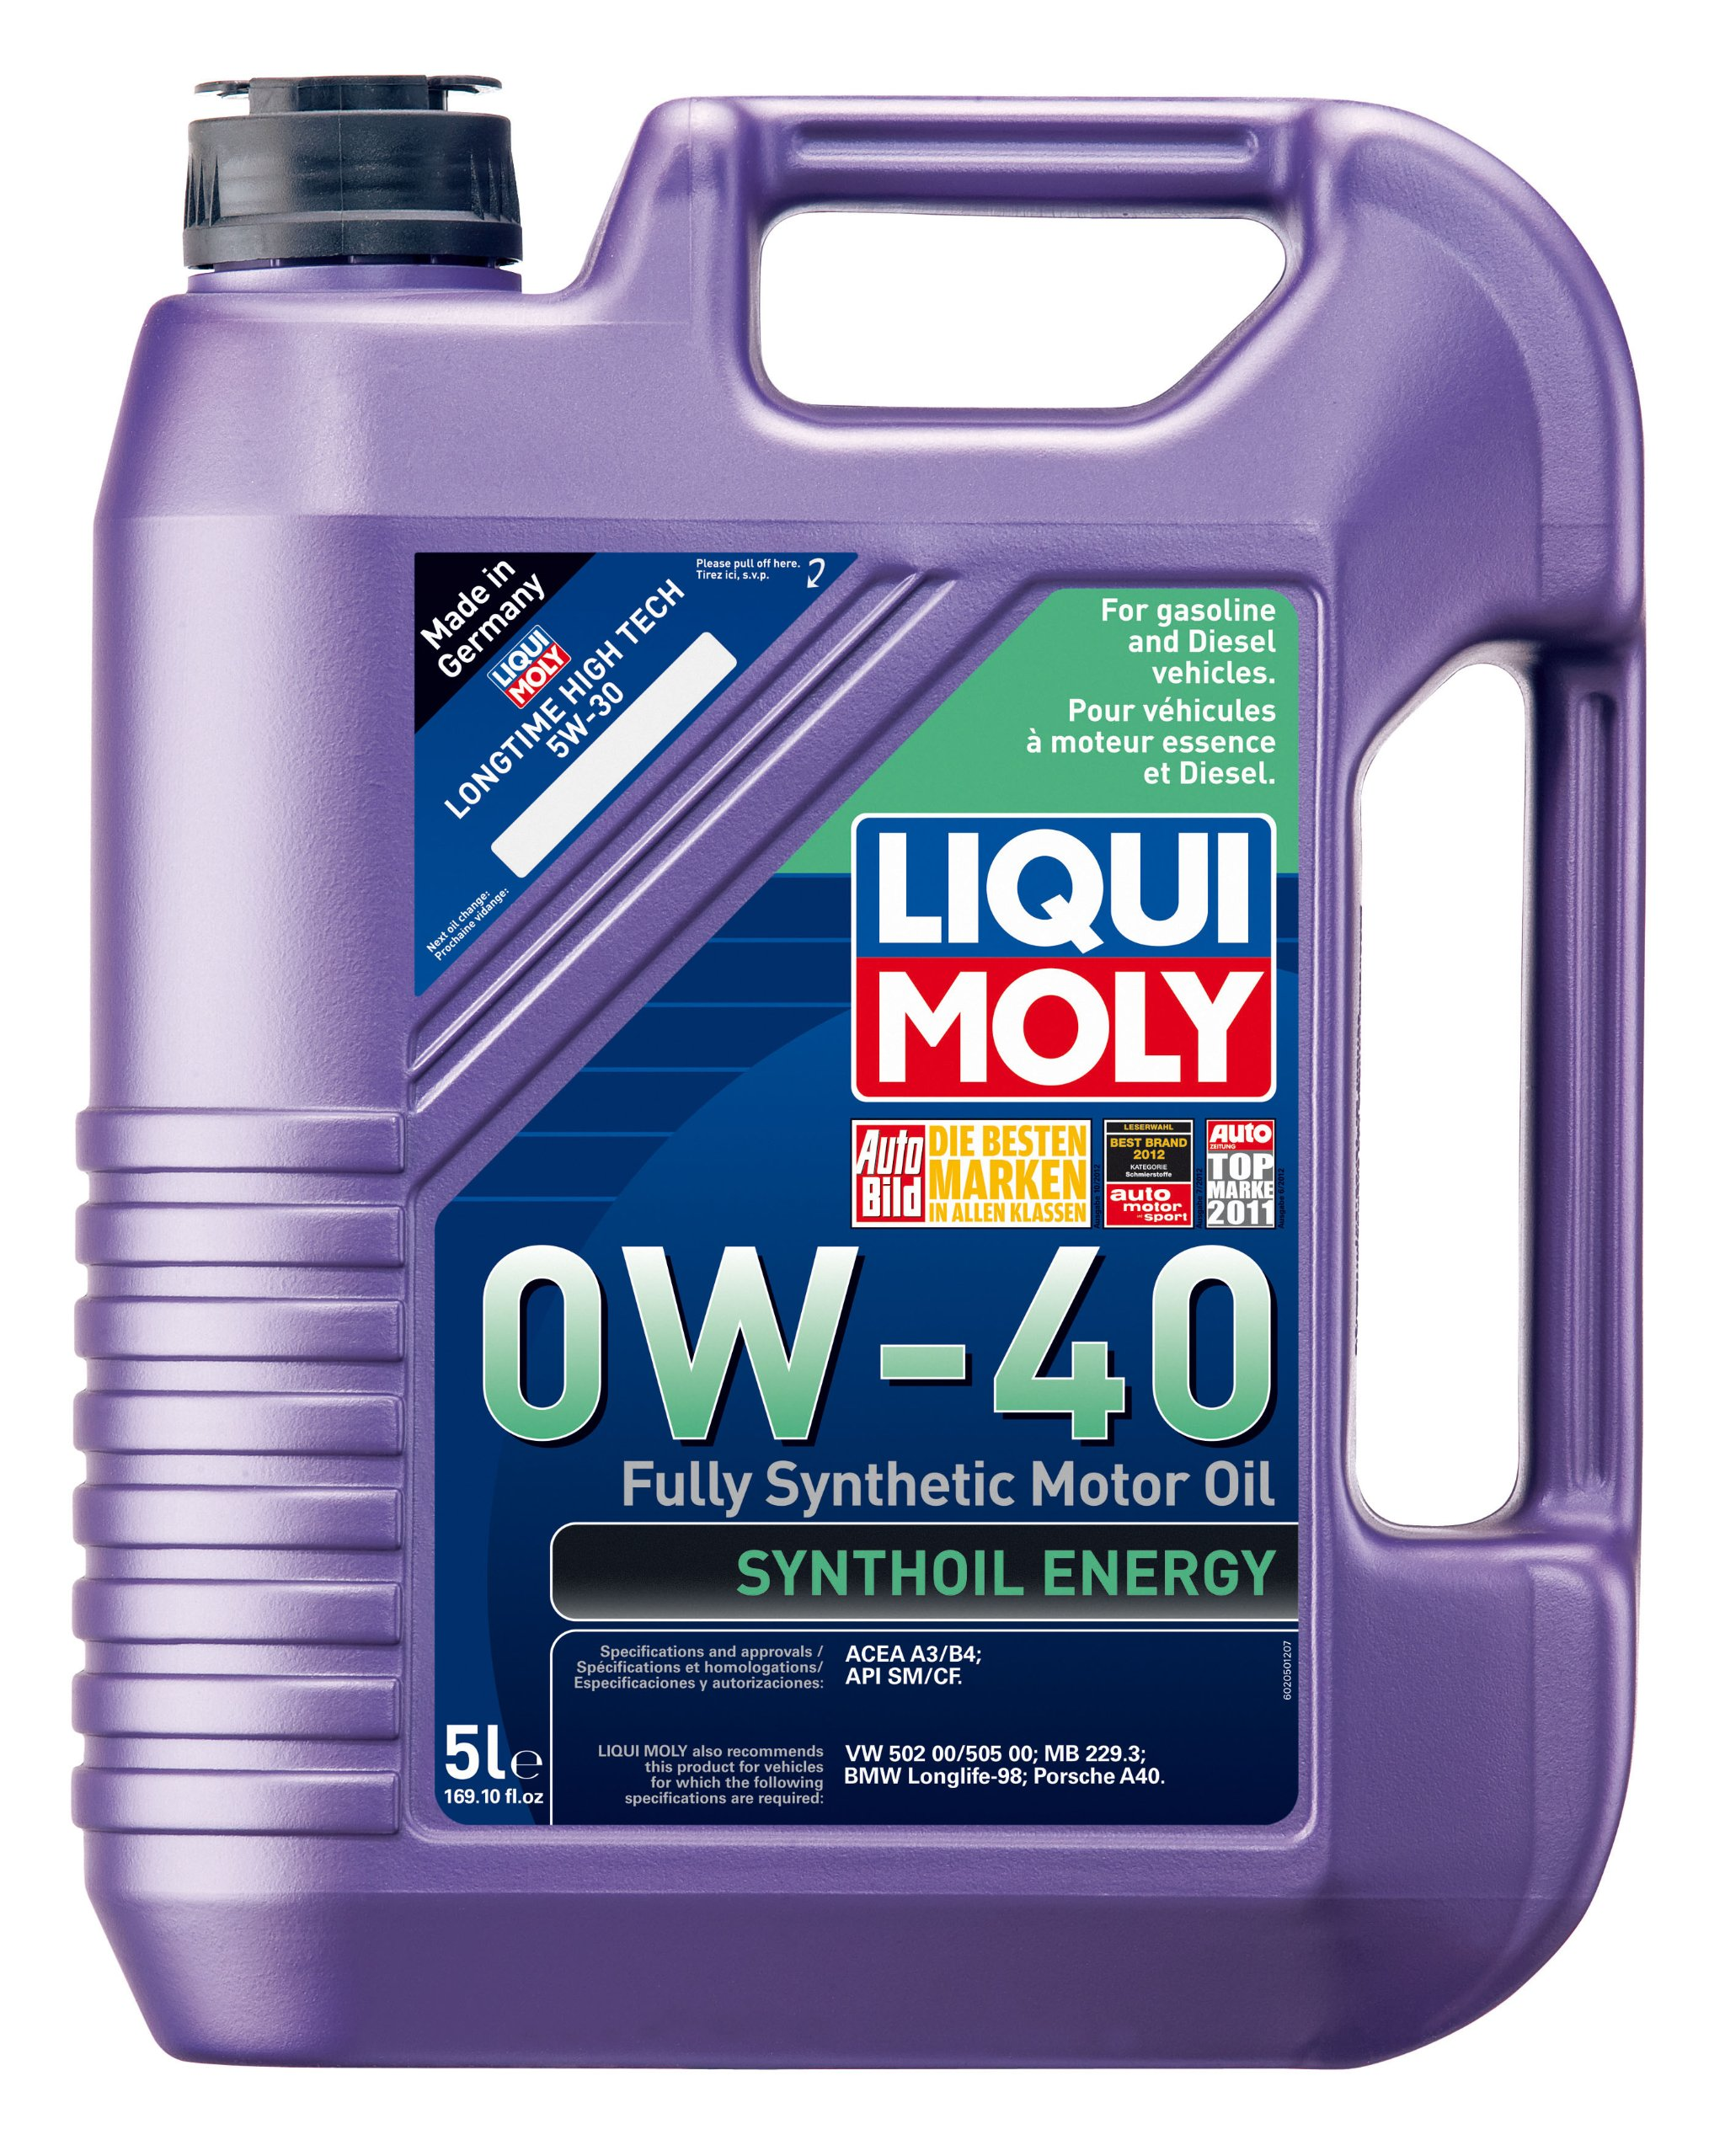 Liqui Moly 2050 Synthoil Energy 0W-40 Motor Oil - 5 Liter